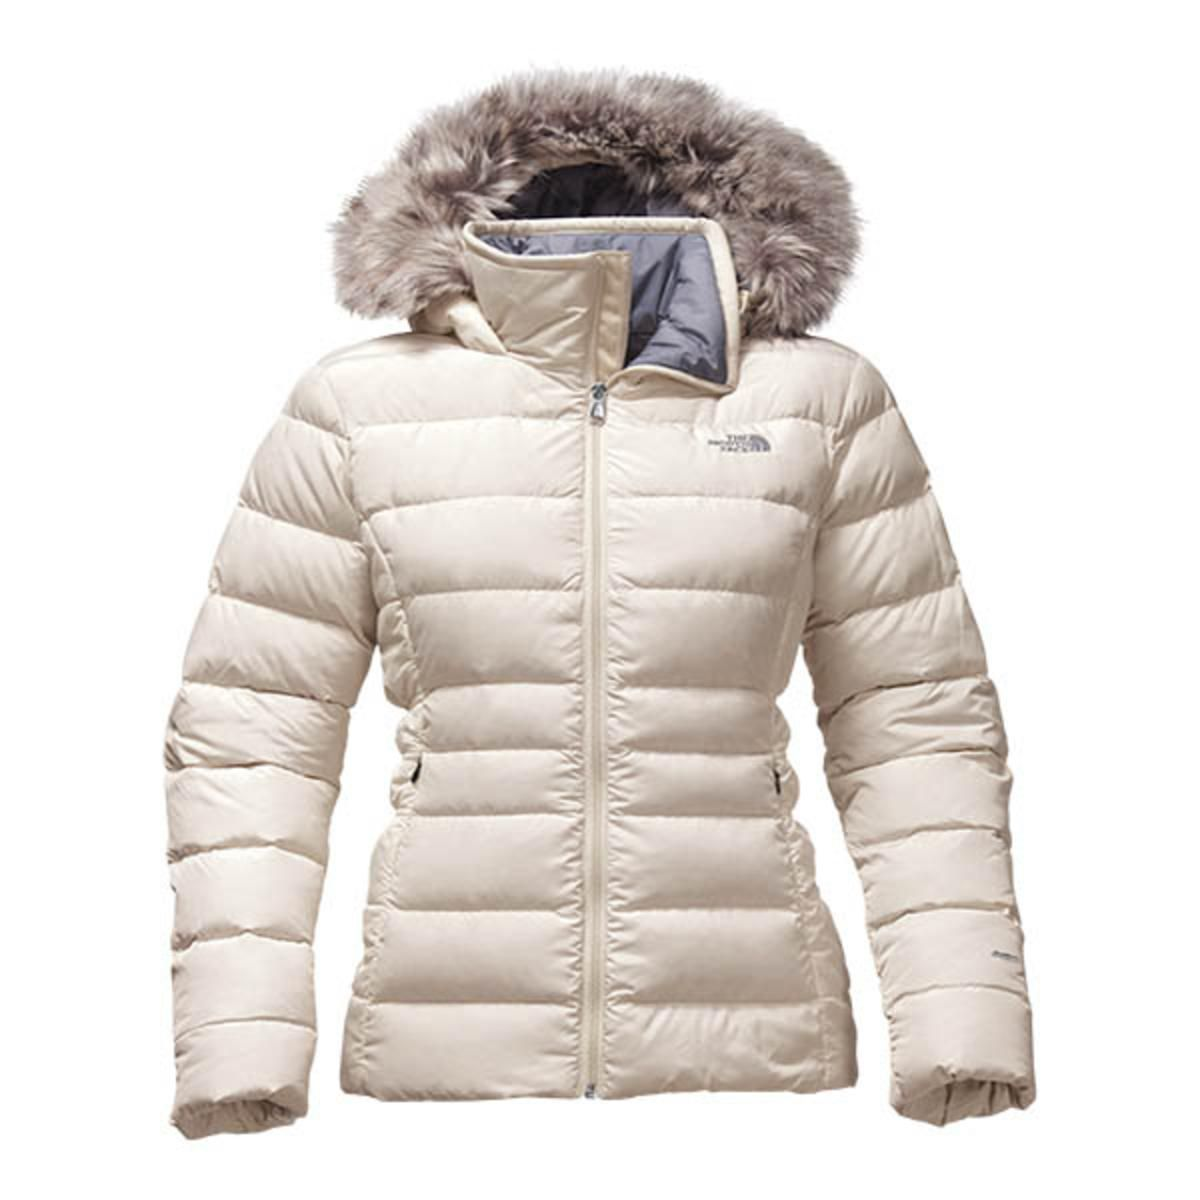 64bdb26e3 The North Face Women's Gotham II Jacket - The Warming Store